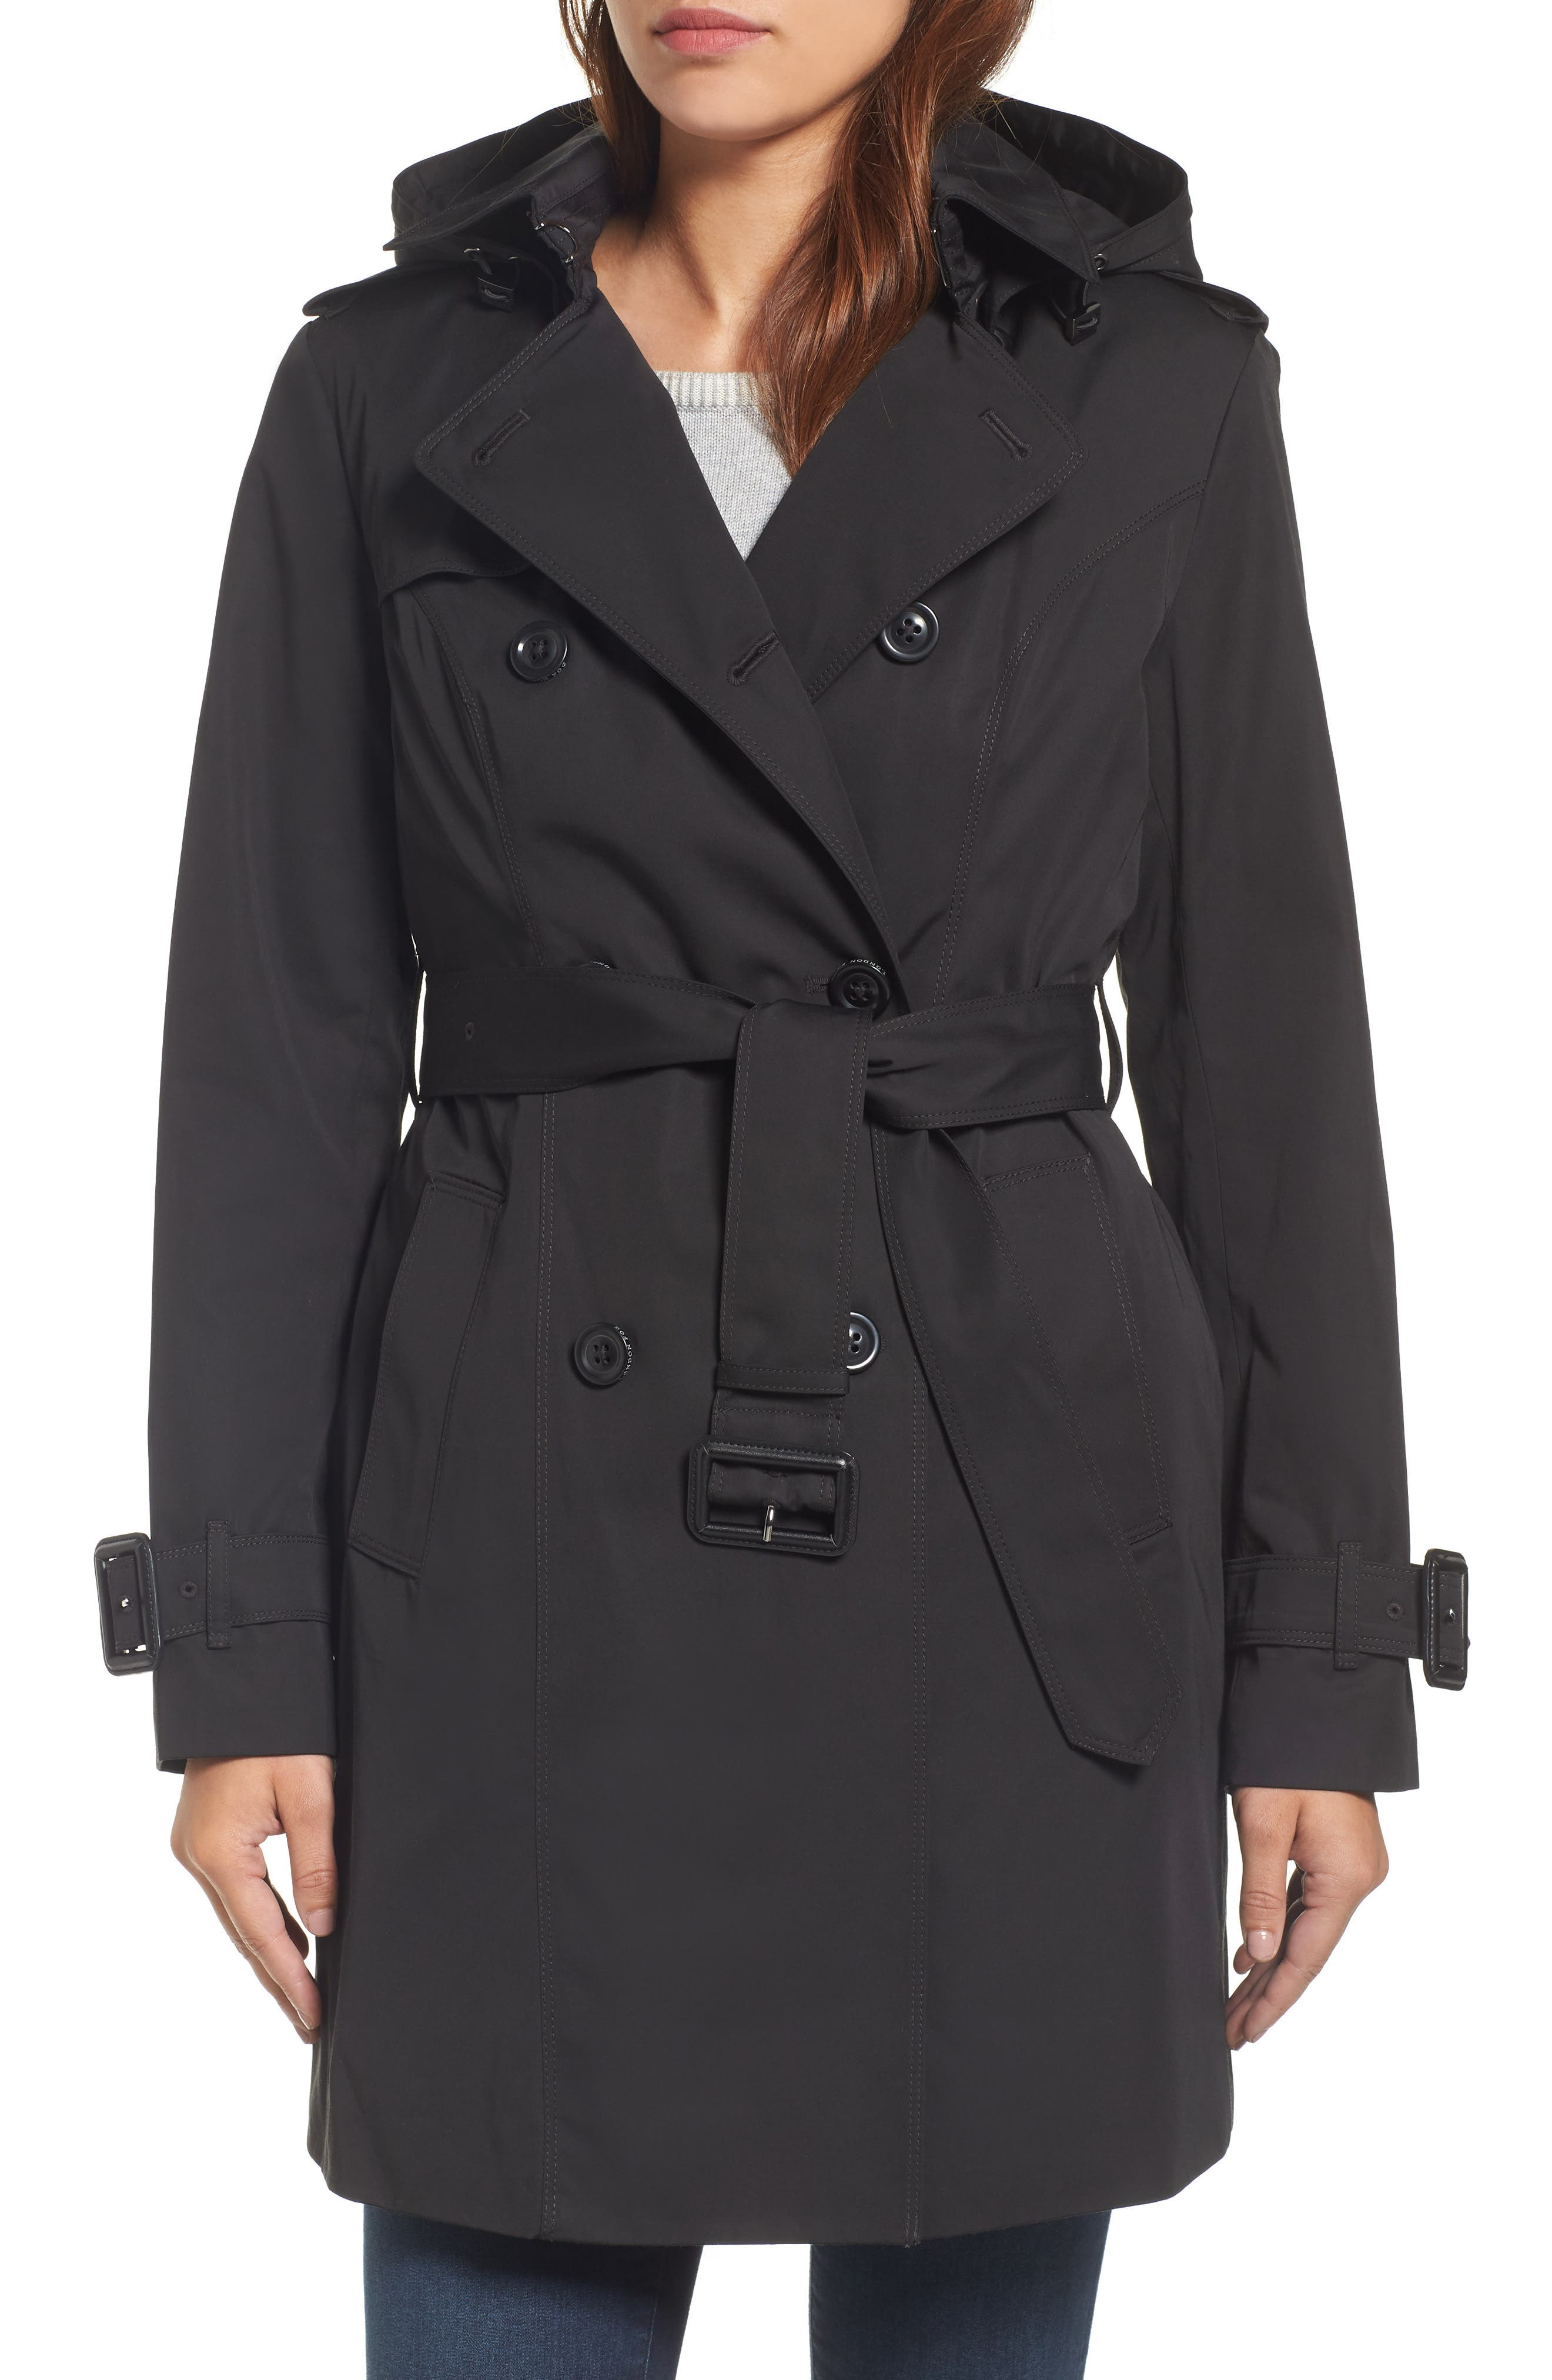 Main Image - London Fog Heritage Trench Coat with Detachable Liner (Regular & Petite) (Nordstrom Exclusive)